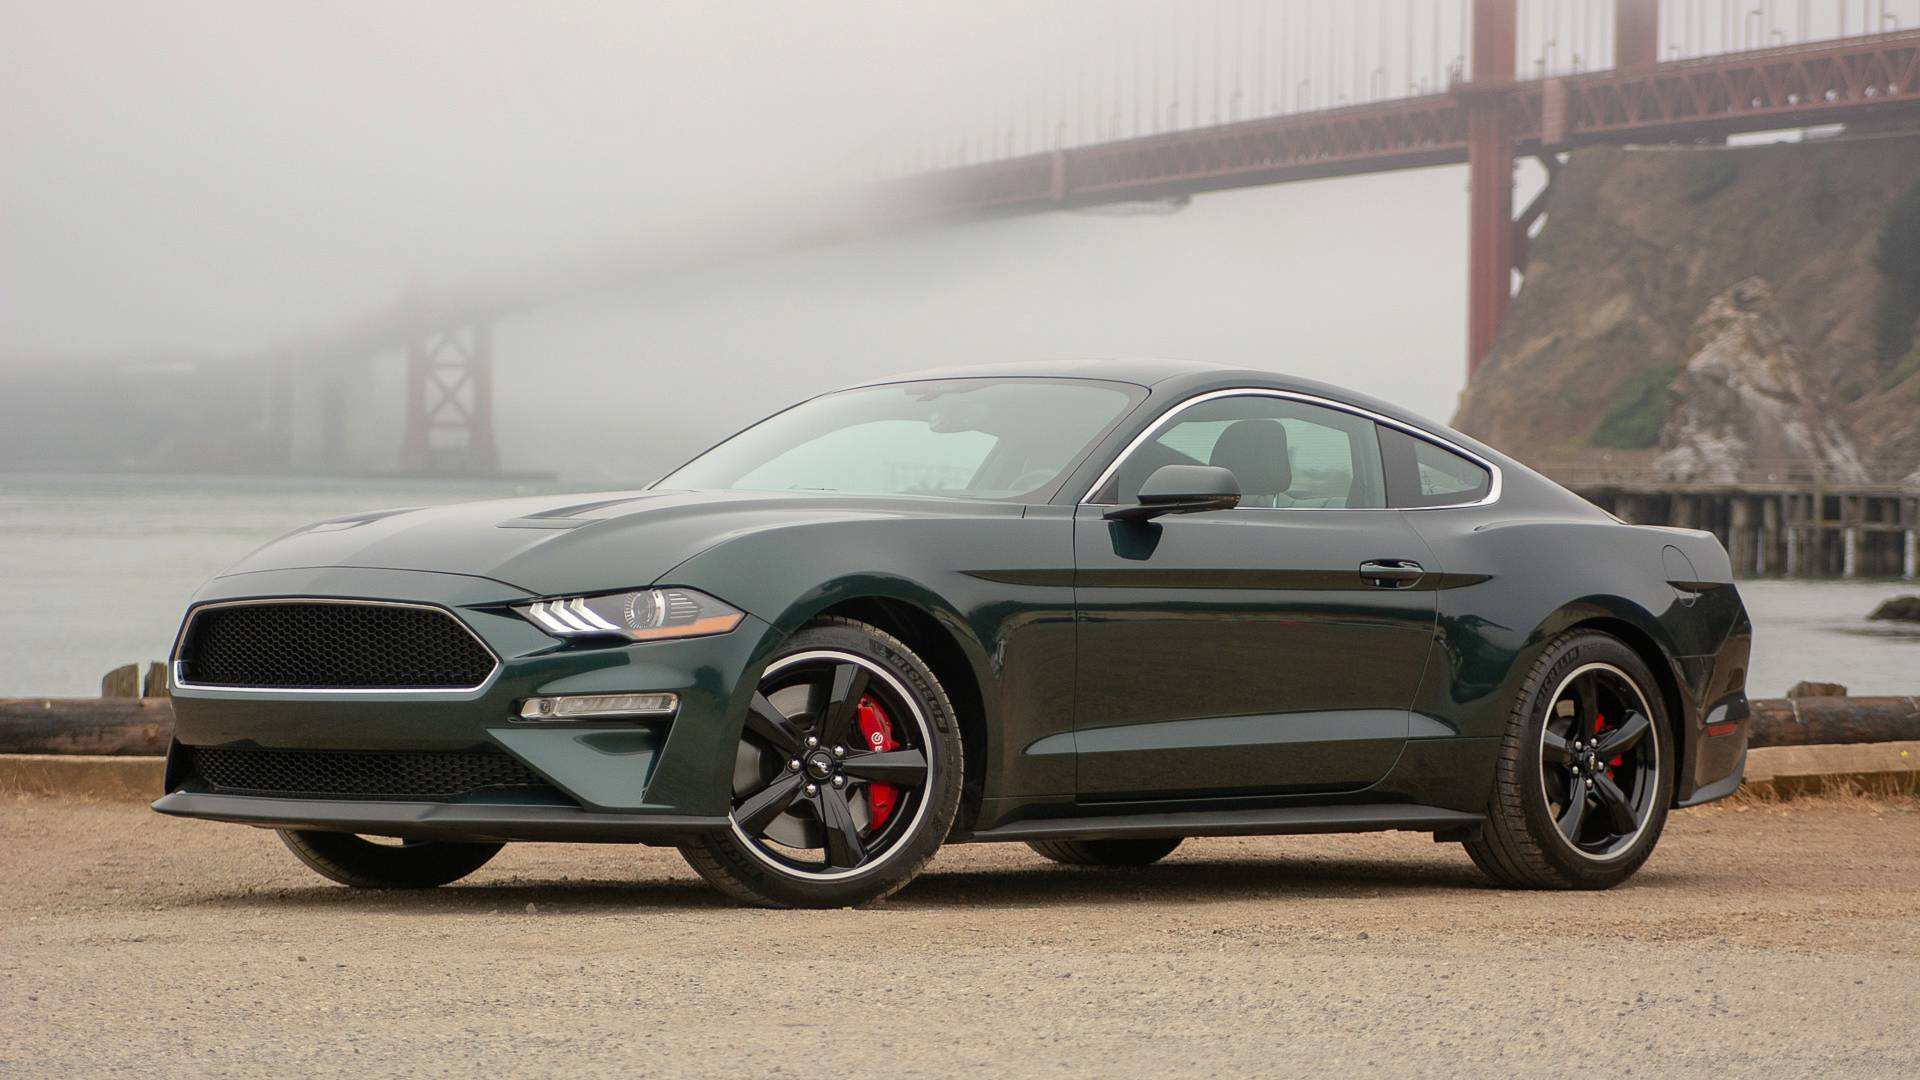 63 Best Review 2019 Mustang Mach 1 Configurations by 2019 Mustang Mach 1